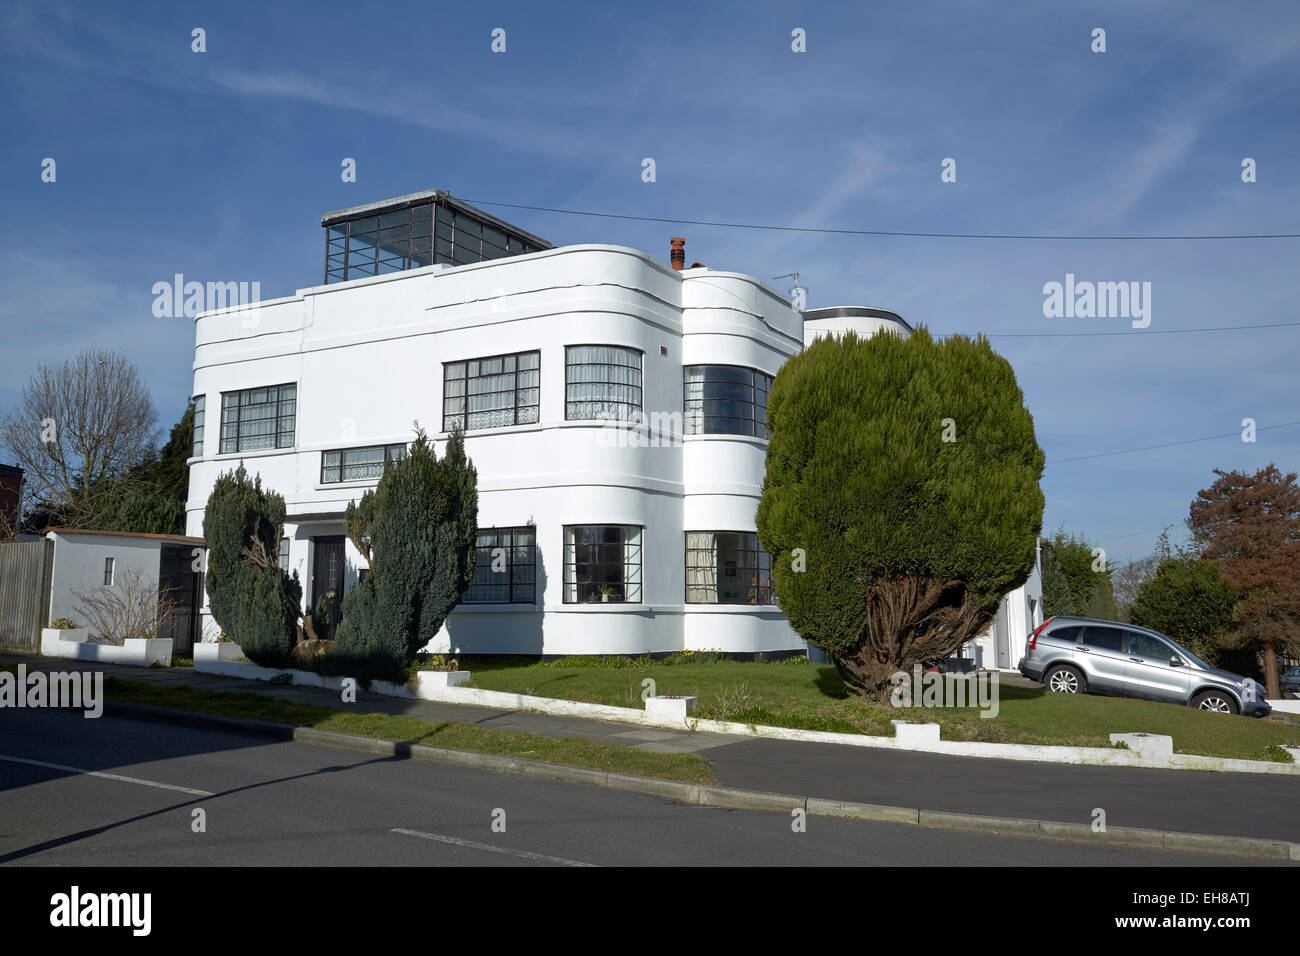 International style 39 art deco 39 house kent uk stock photo for International decor uk